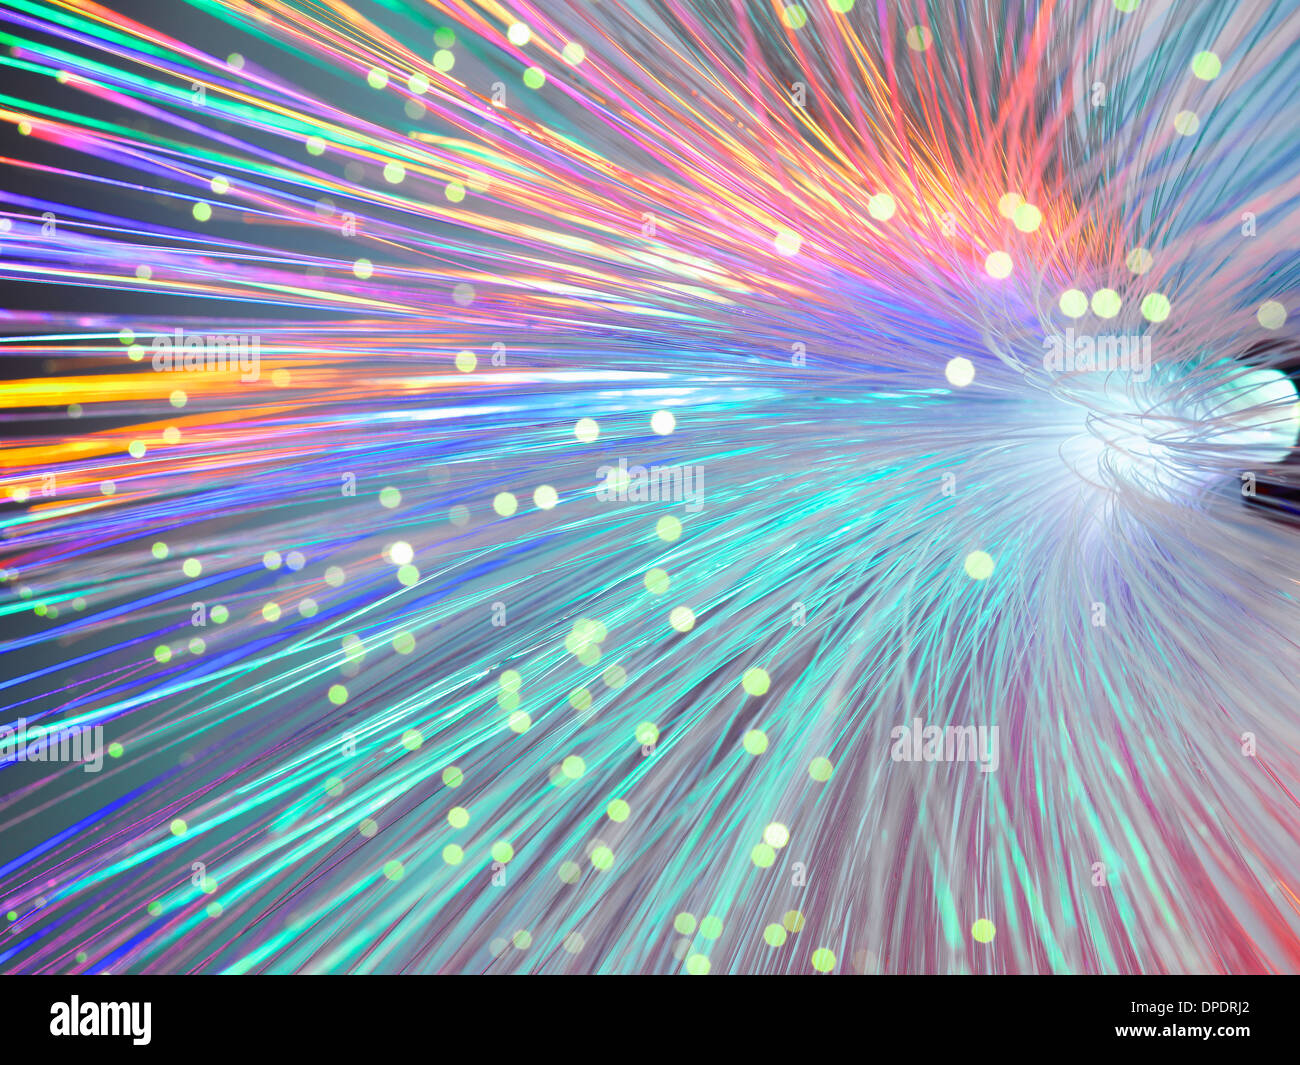 Bundle of fibre optics used to send data - Stock Image